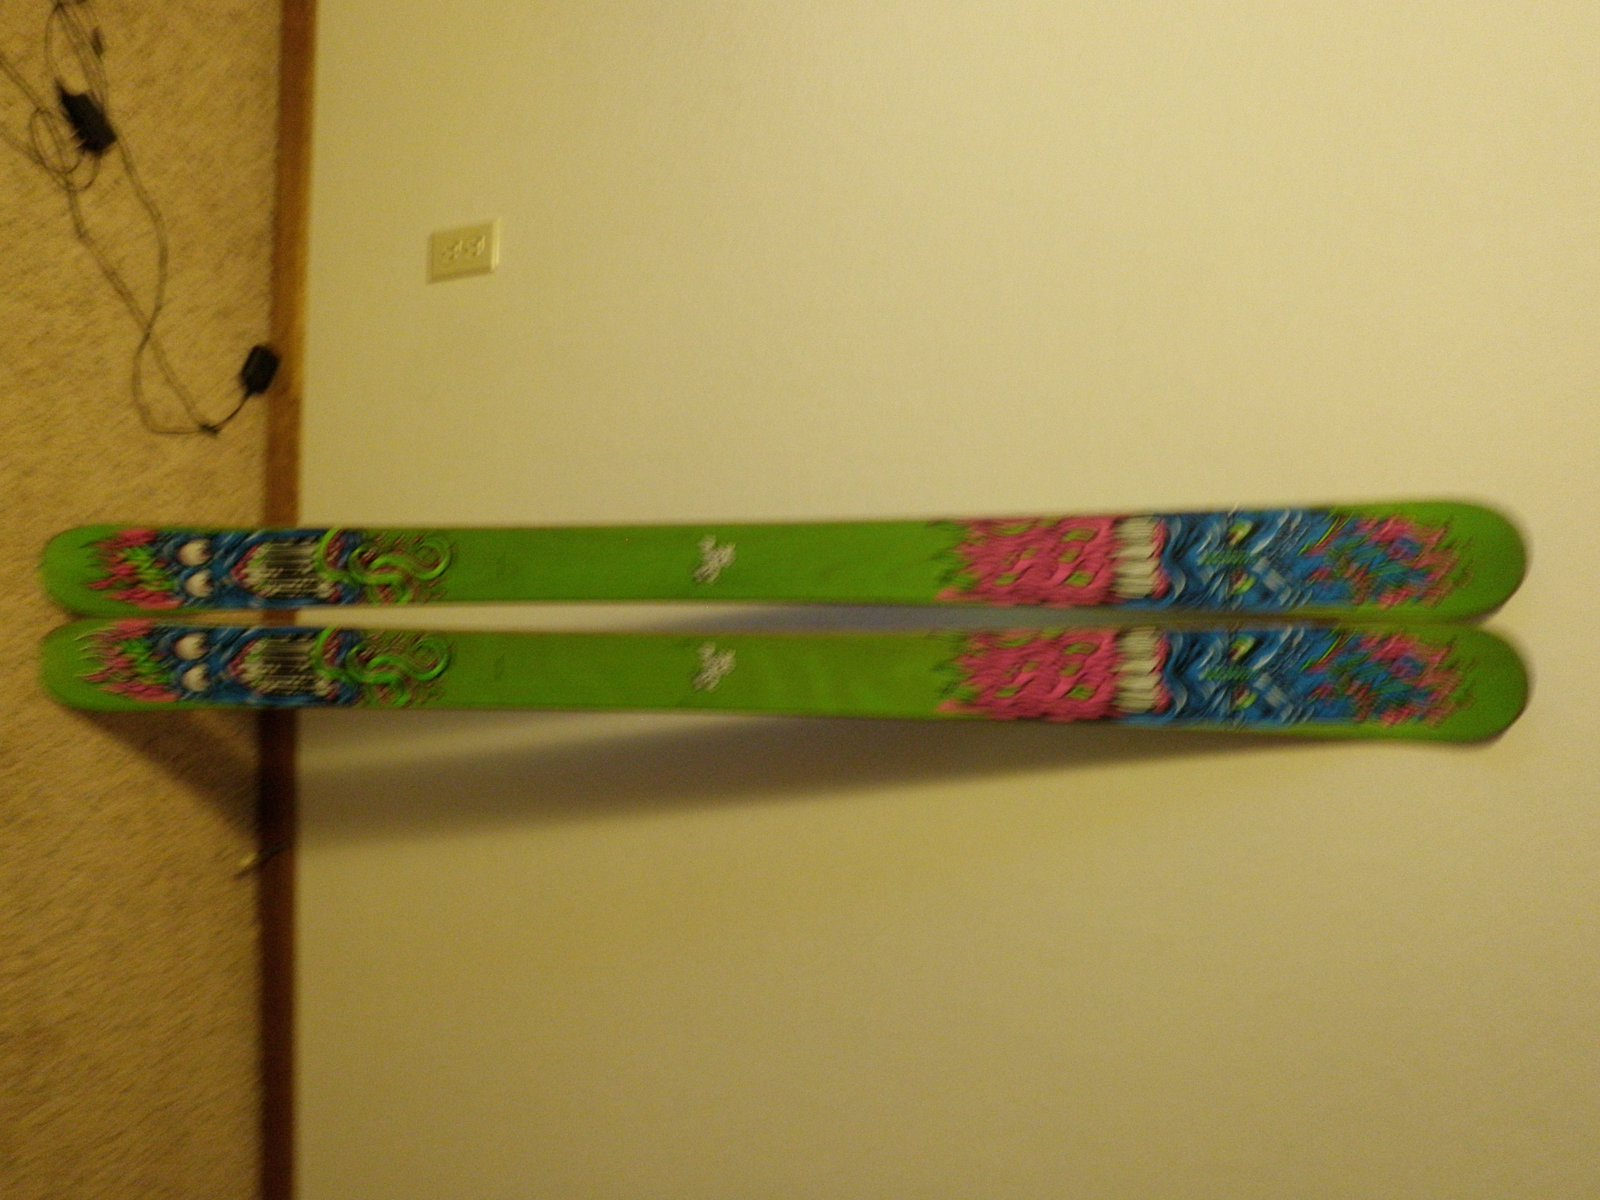 New skis - 2 of 2